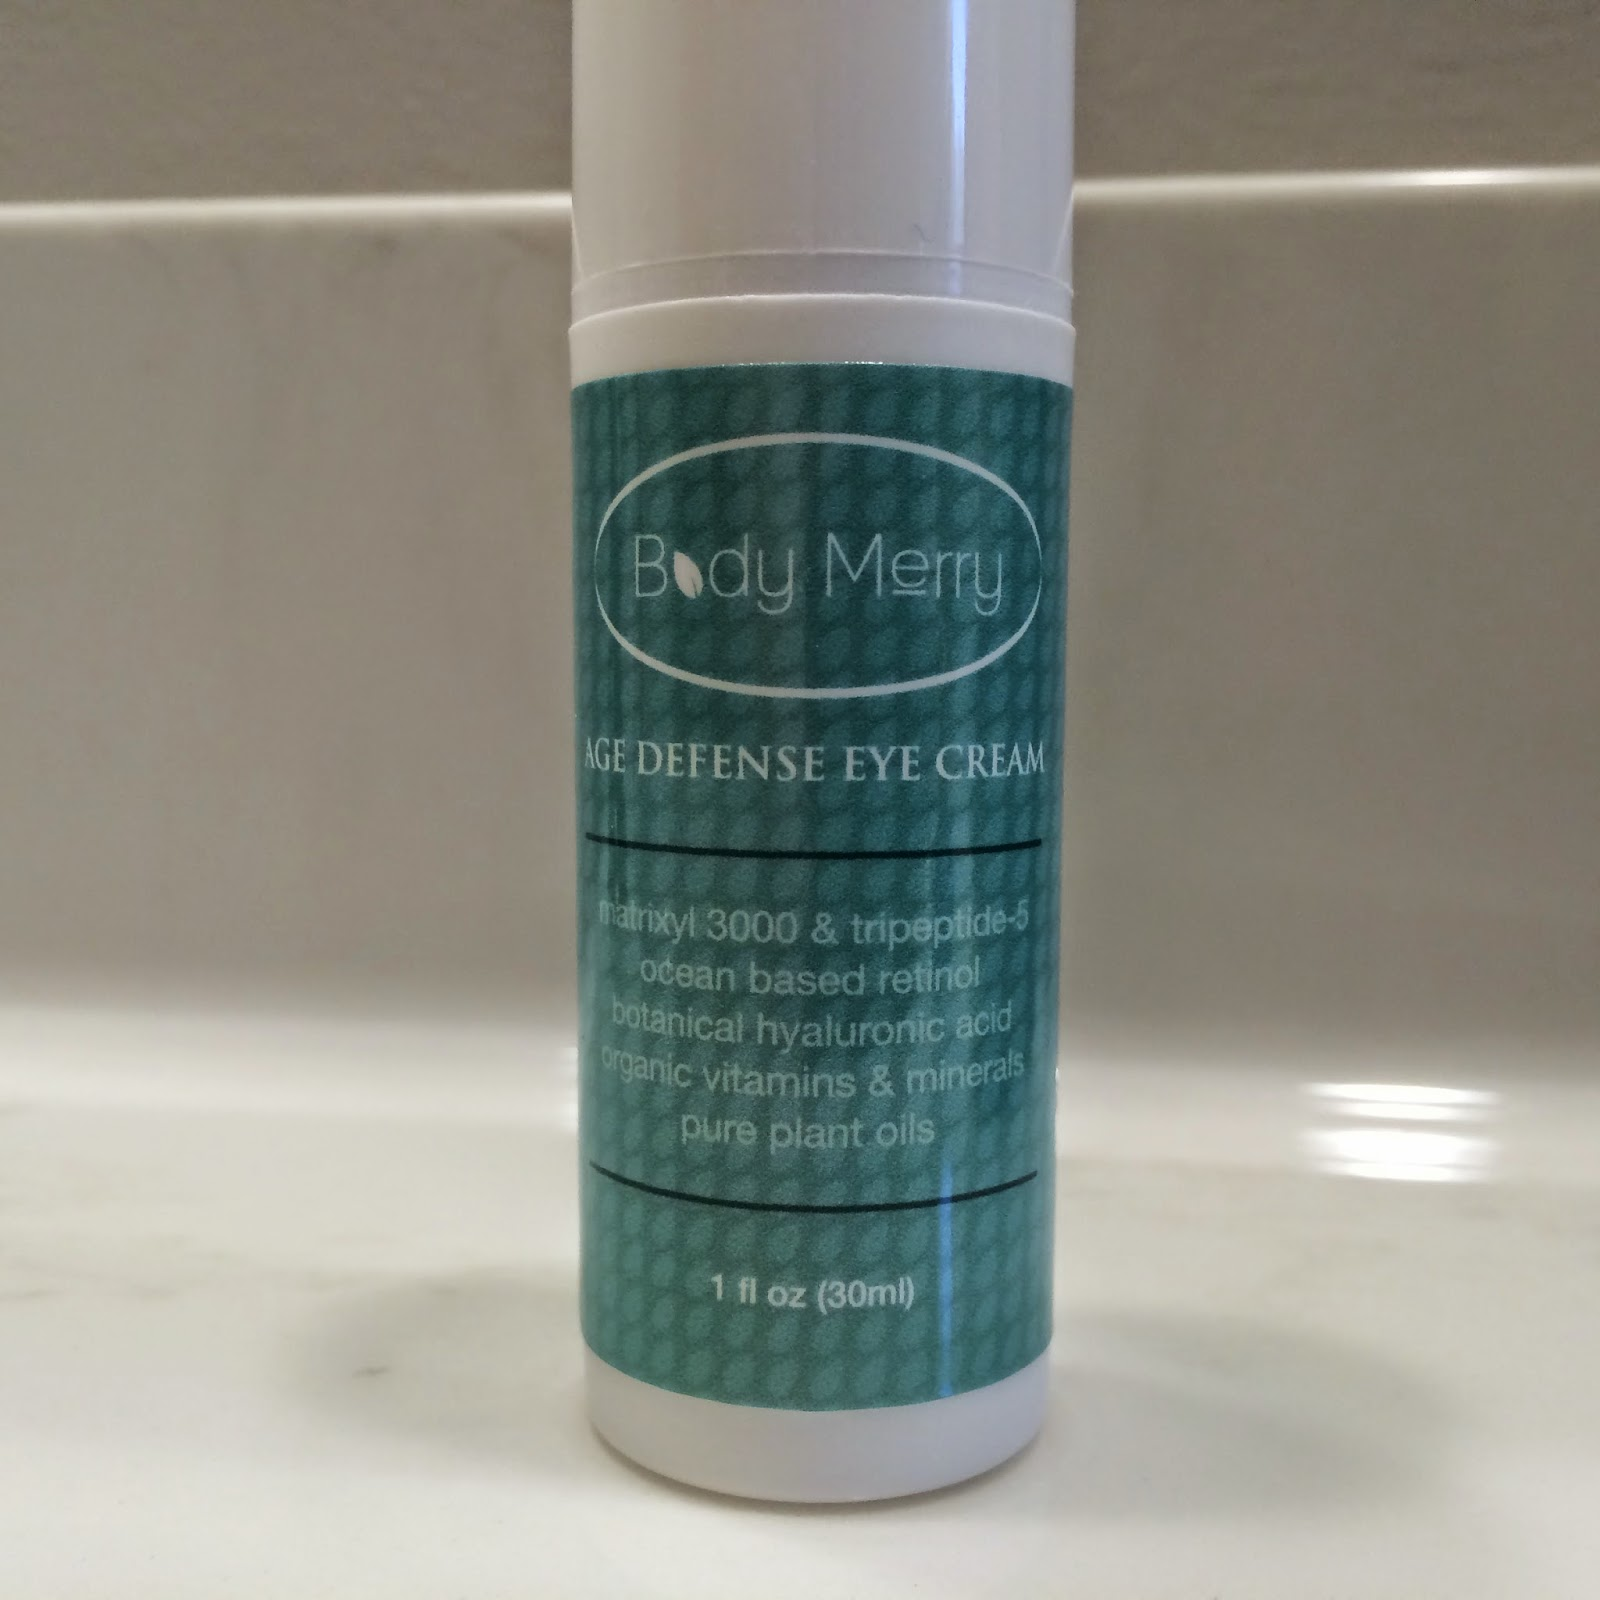 Body Merry Age Defense Eye Cream #review #ivysvariety